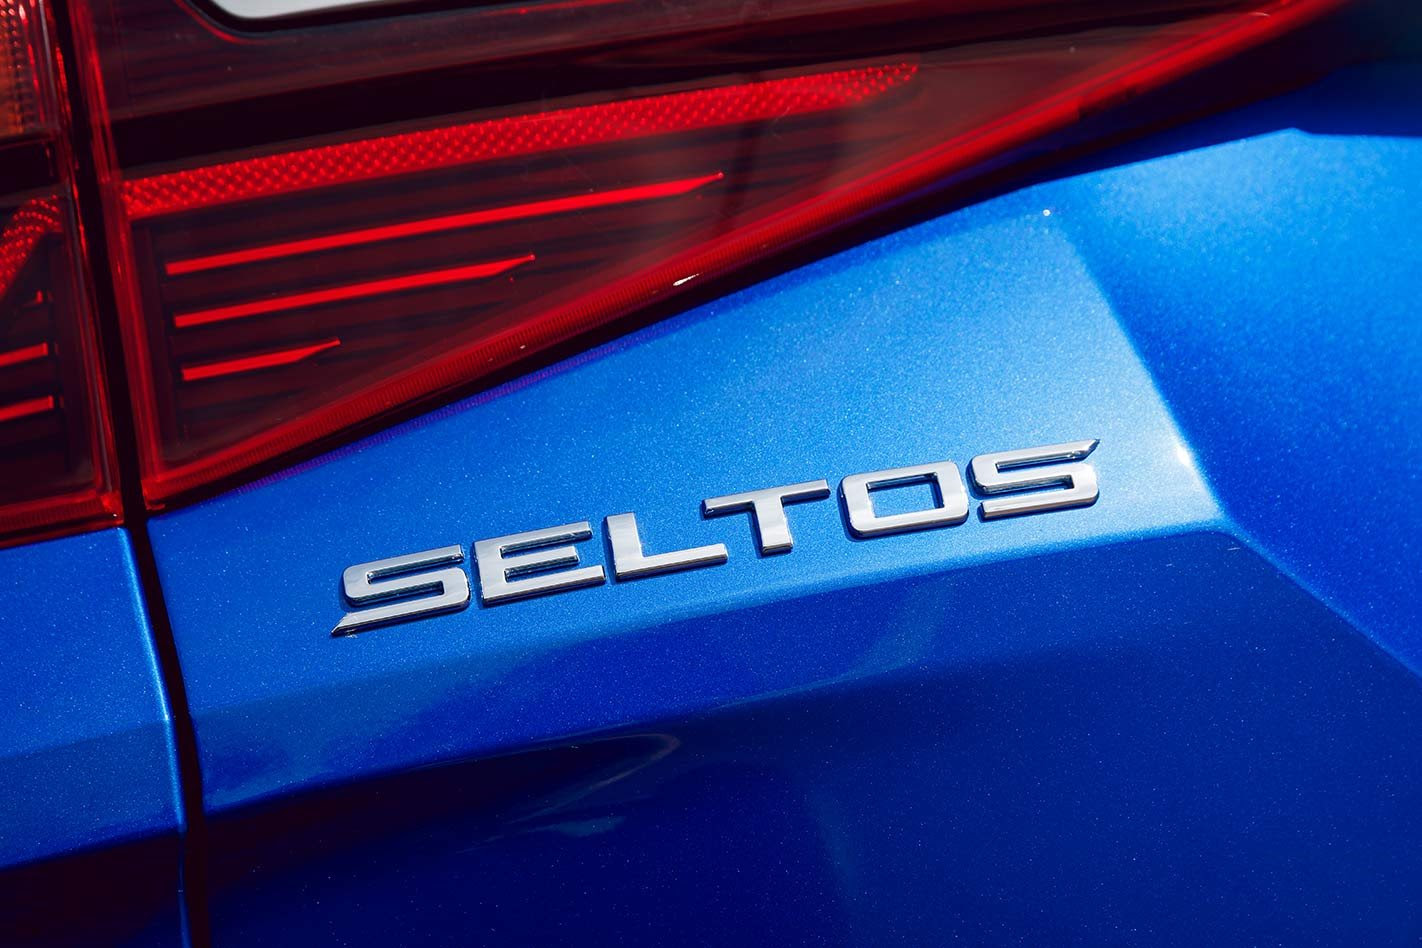 Kia Seltos badge